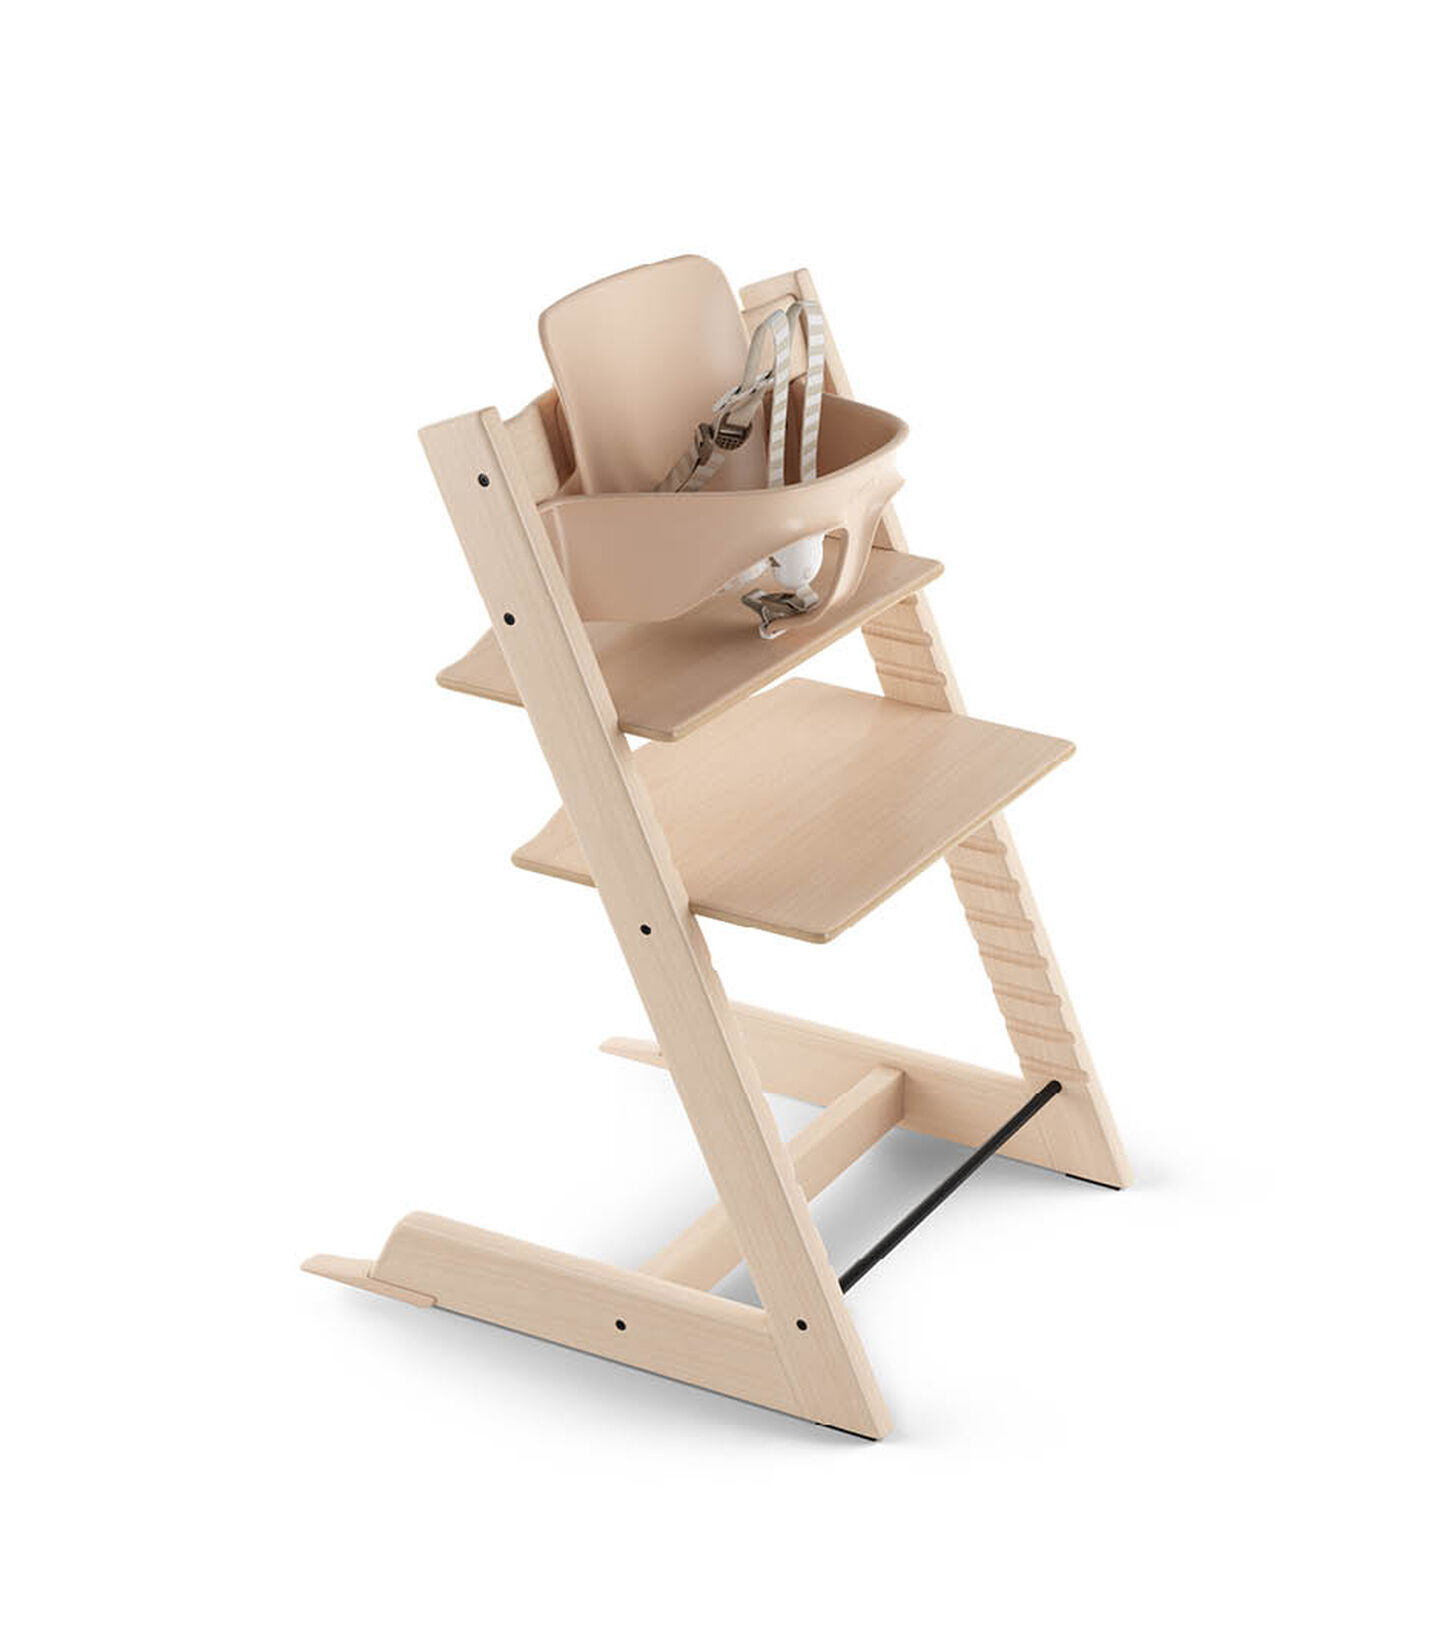 Tripp Trapp® Bundle High Chair US 18 Natural, Natural, mainview view 2